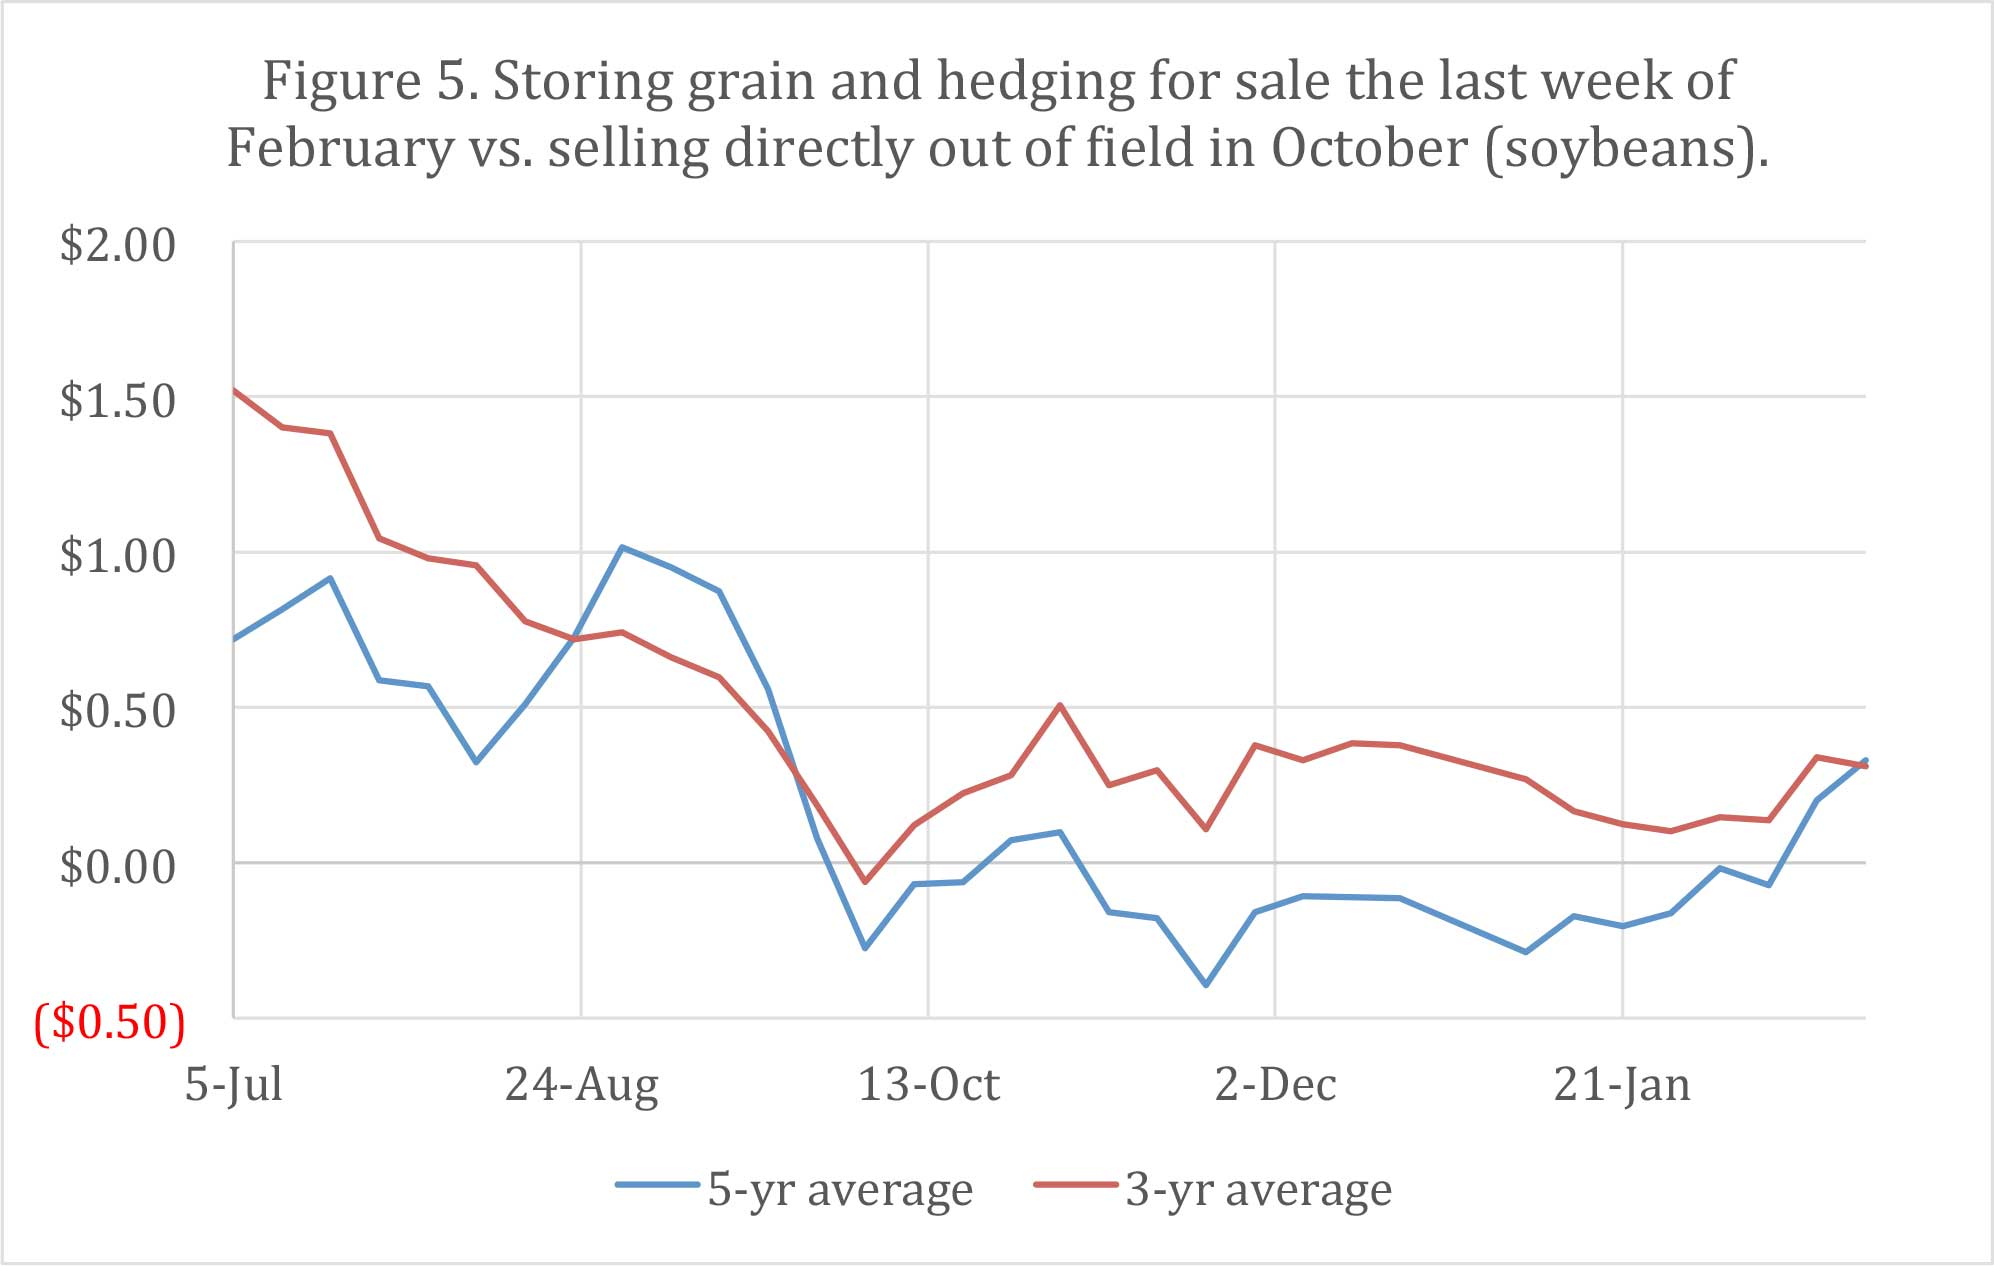 Figure 5. Storing grain and hedging for sale the last week of February vs. selling directly out of field in October (soybeans).